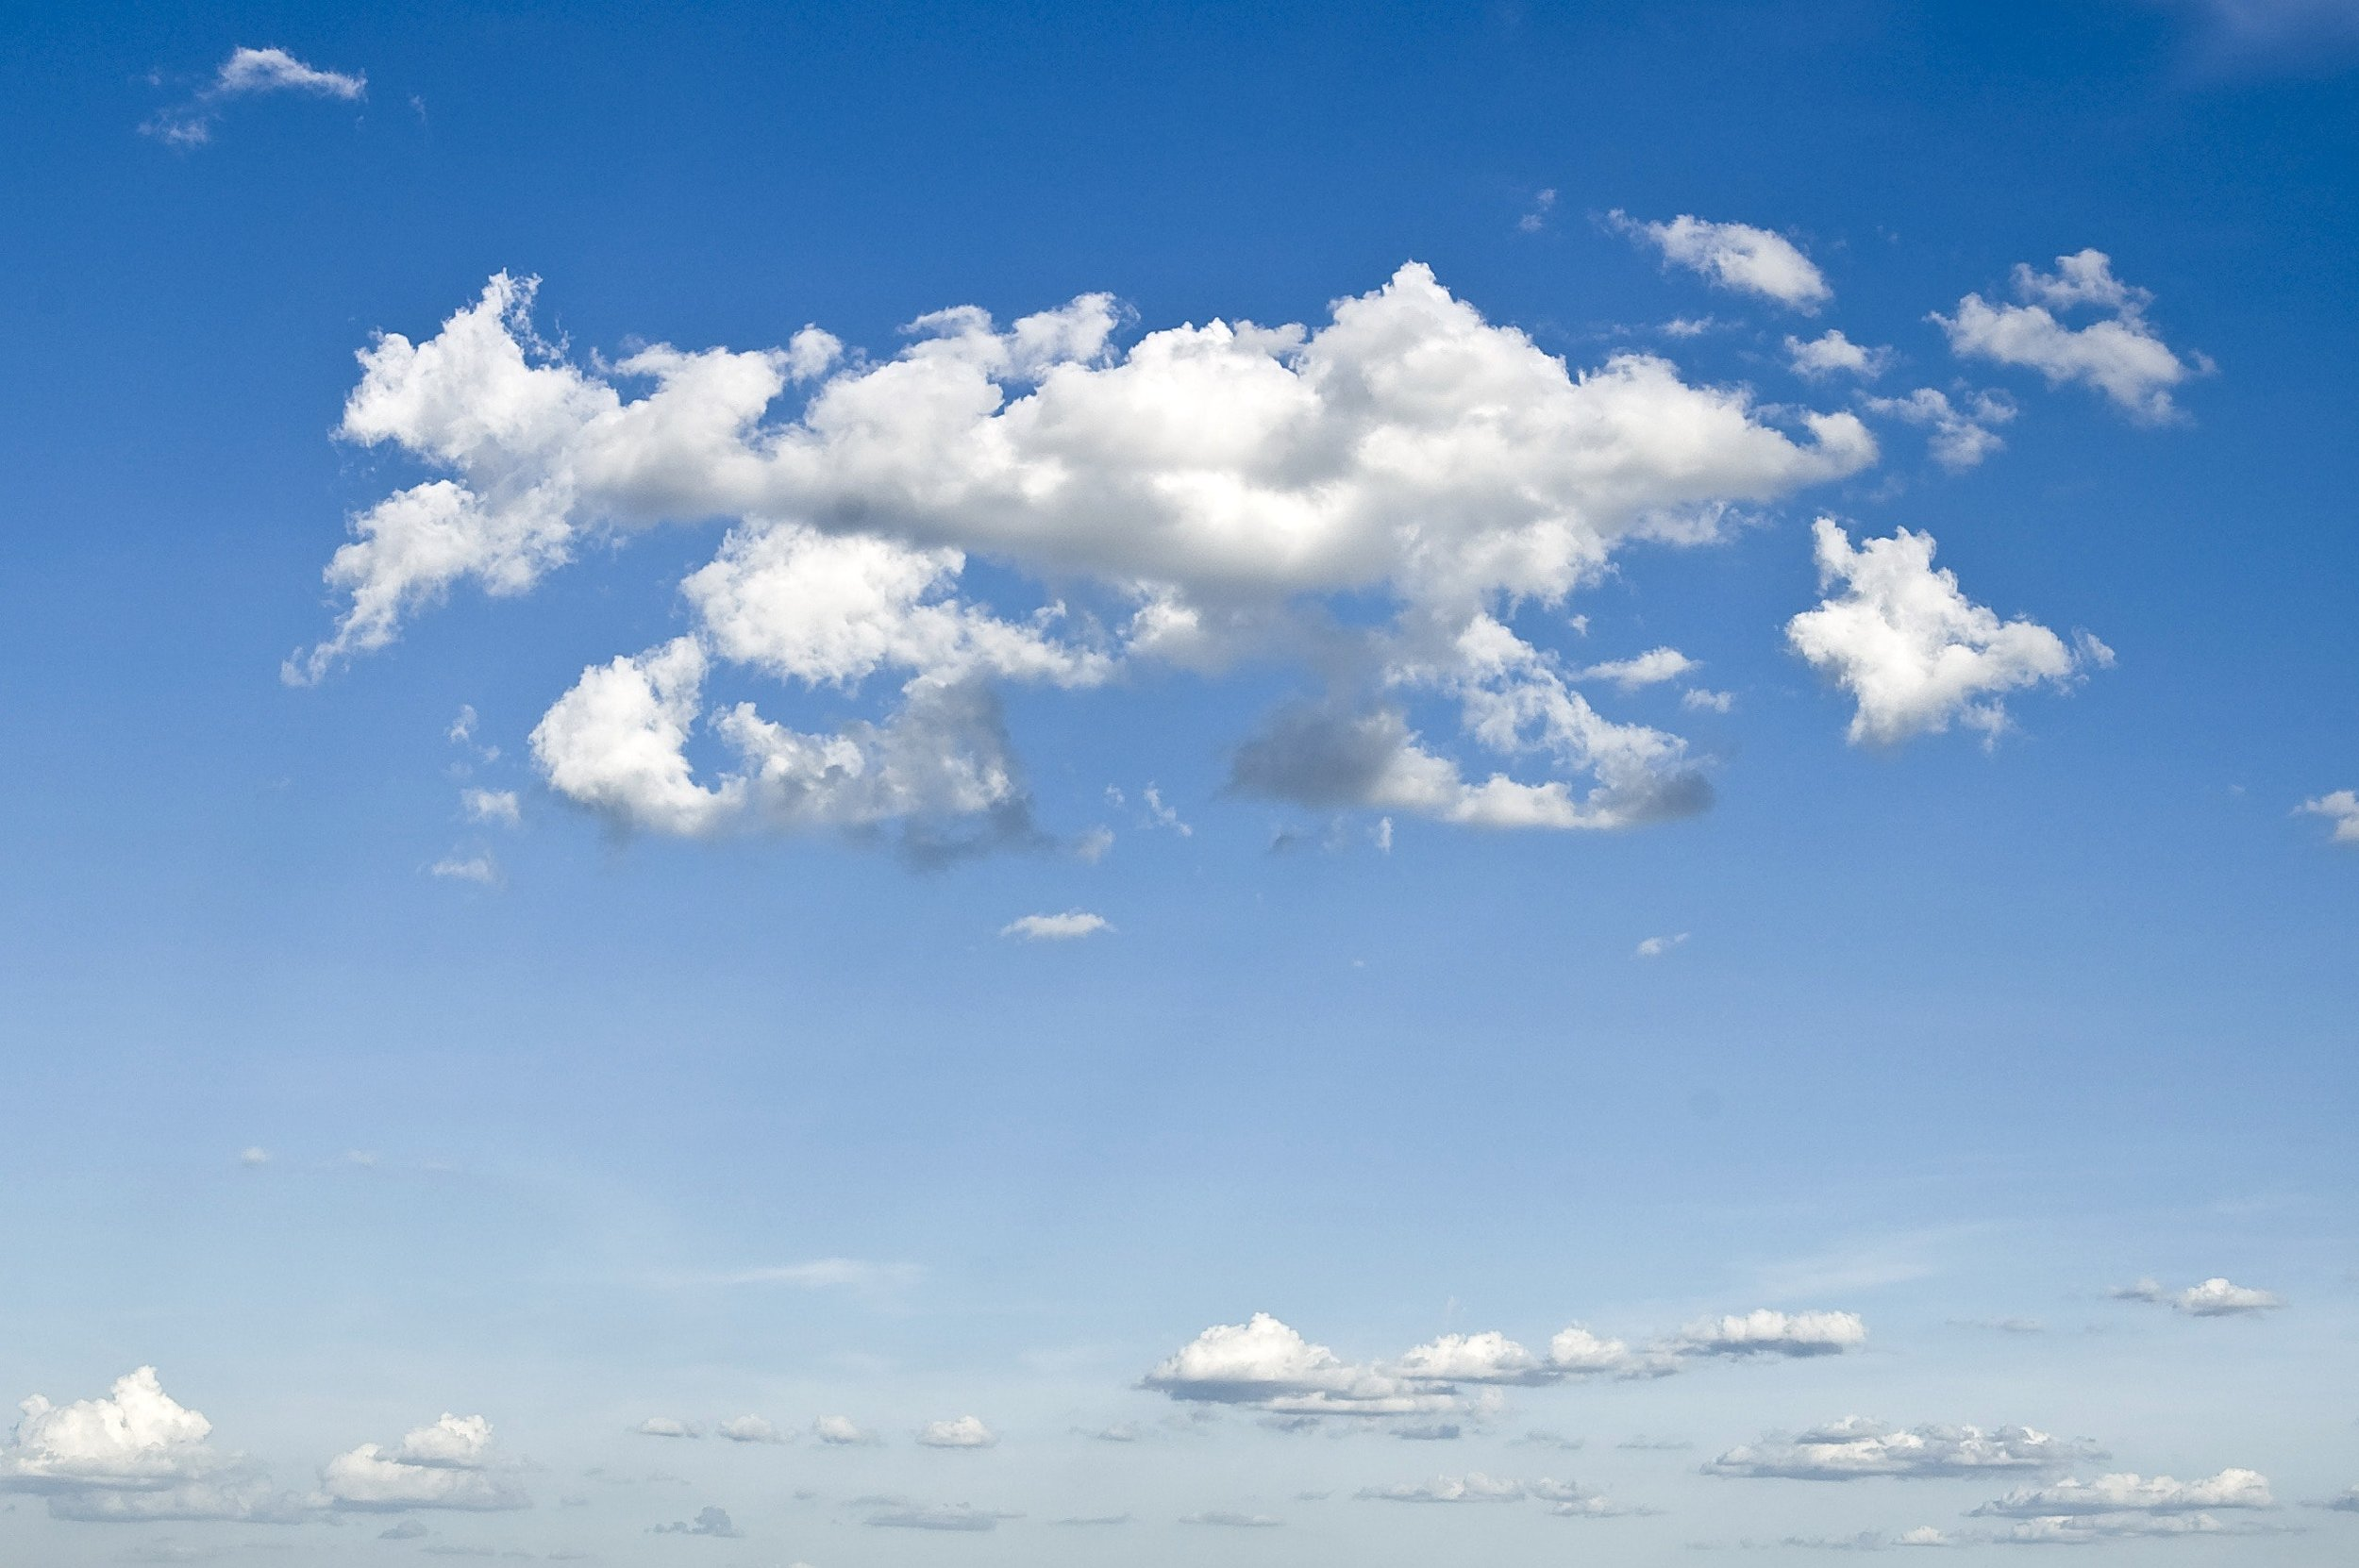 clouds-hd-wallpaper-nature-86695.jpg